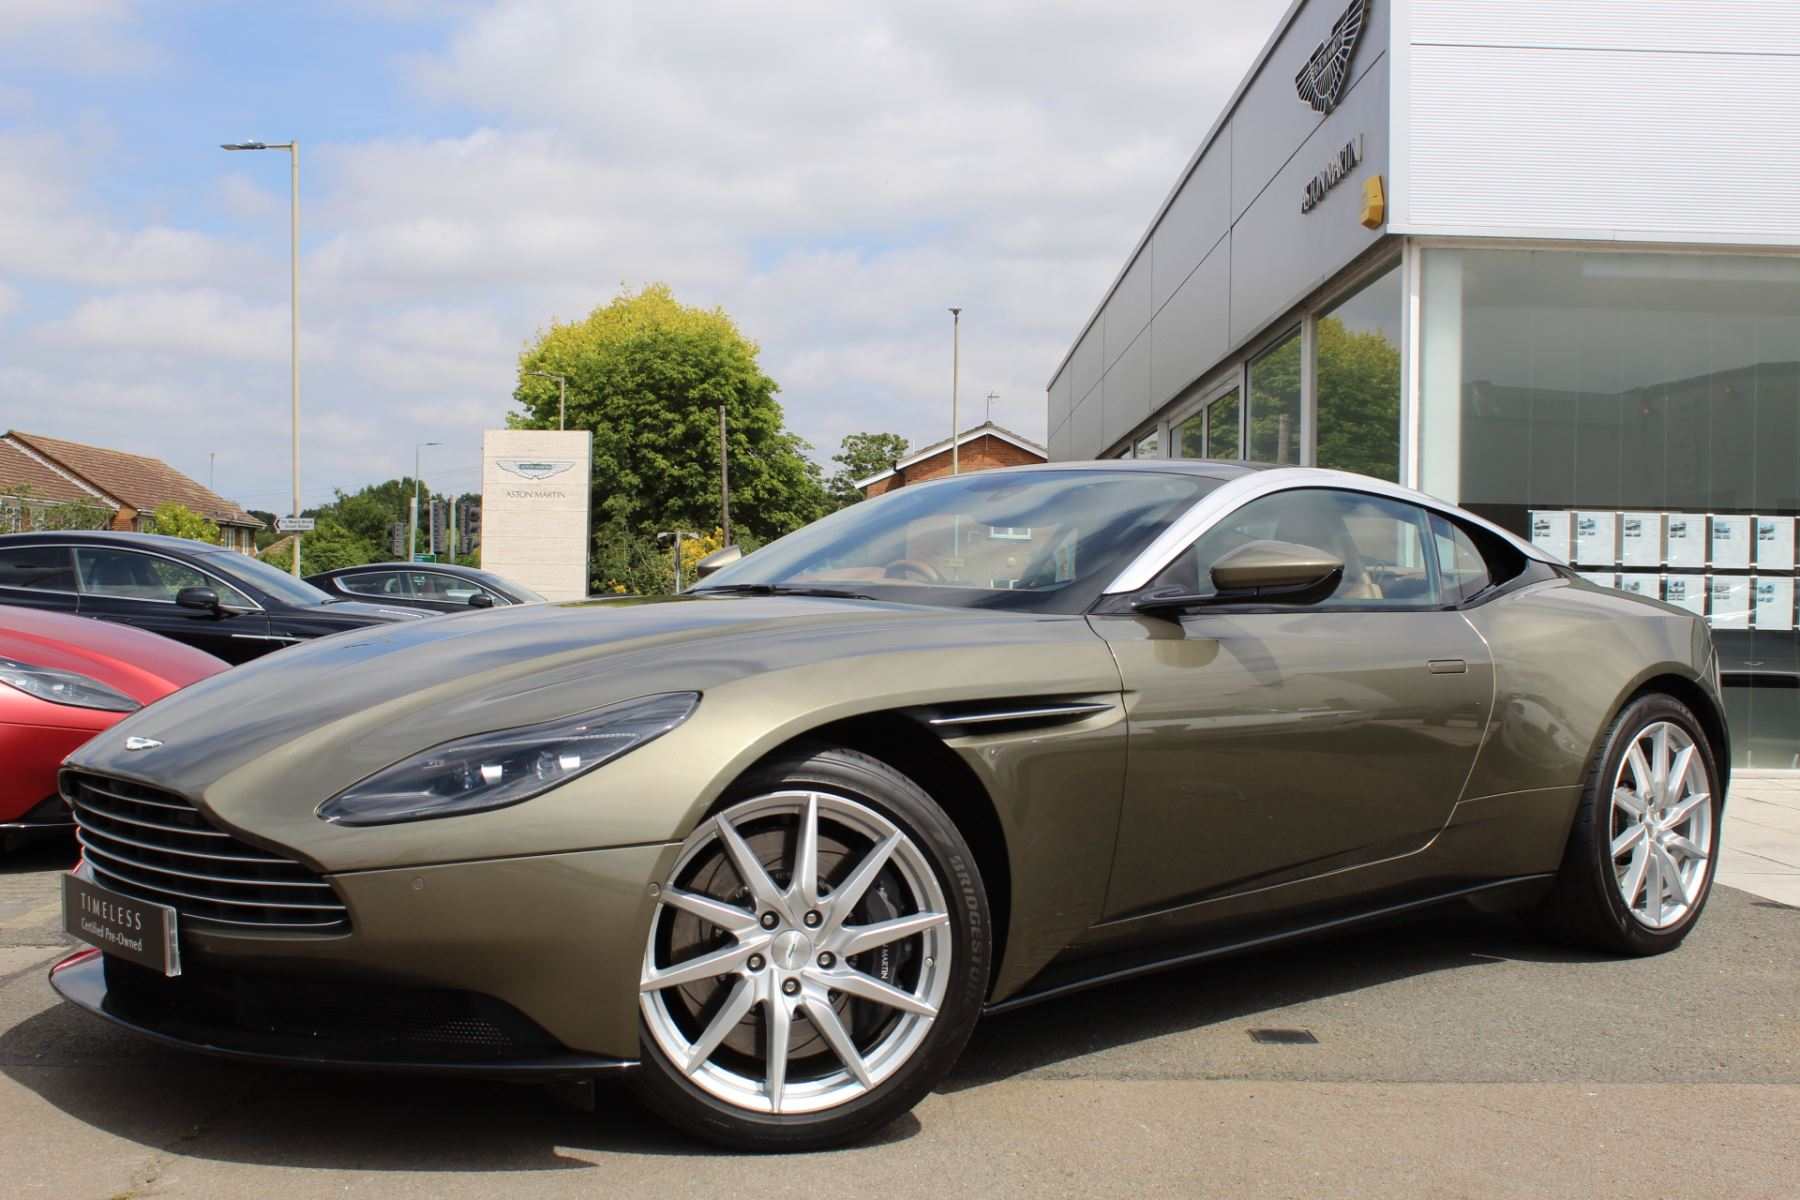 Aston Martin DB11 V8 2dr Touchtronic 4.0 Automatic Coupe (2018.25) image